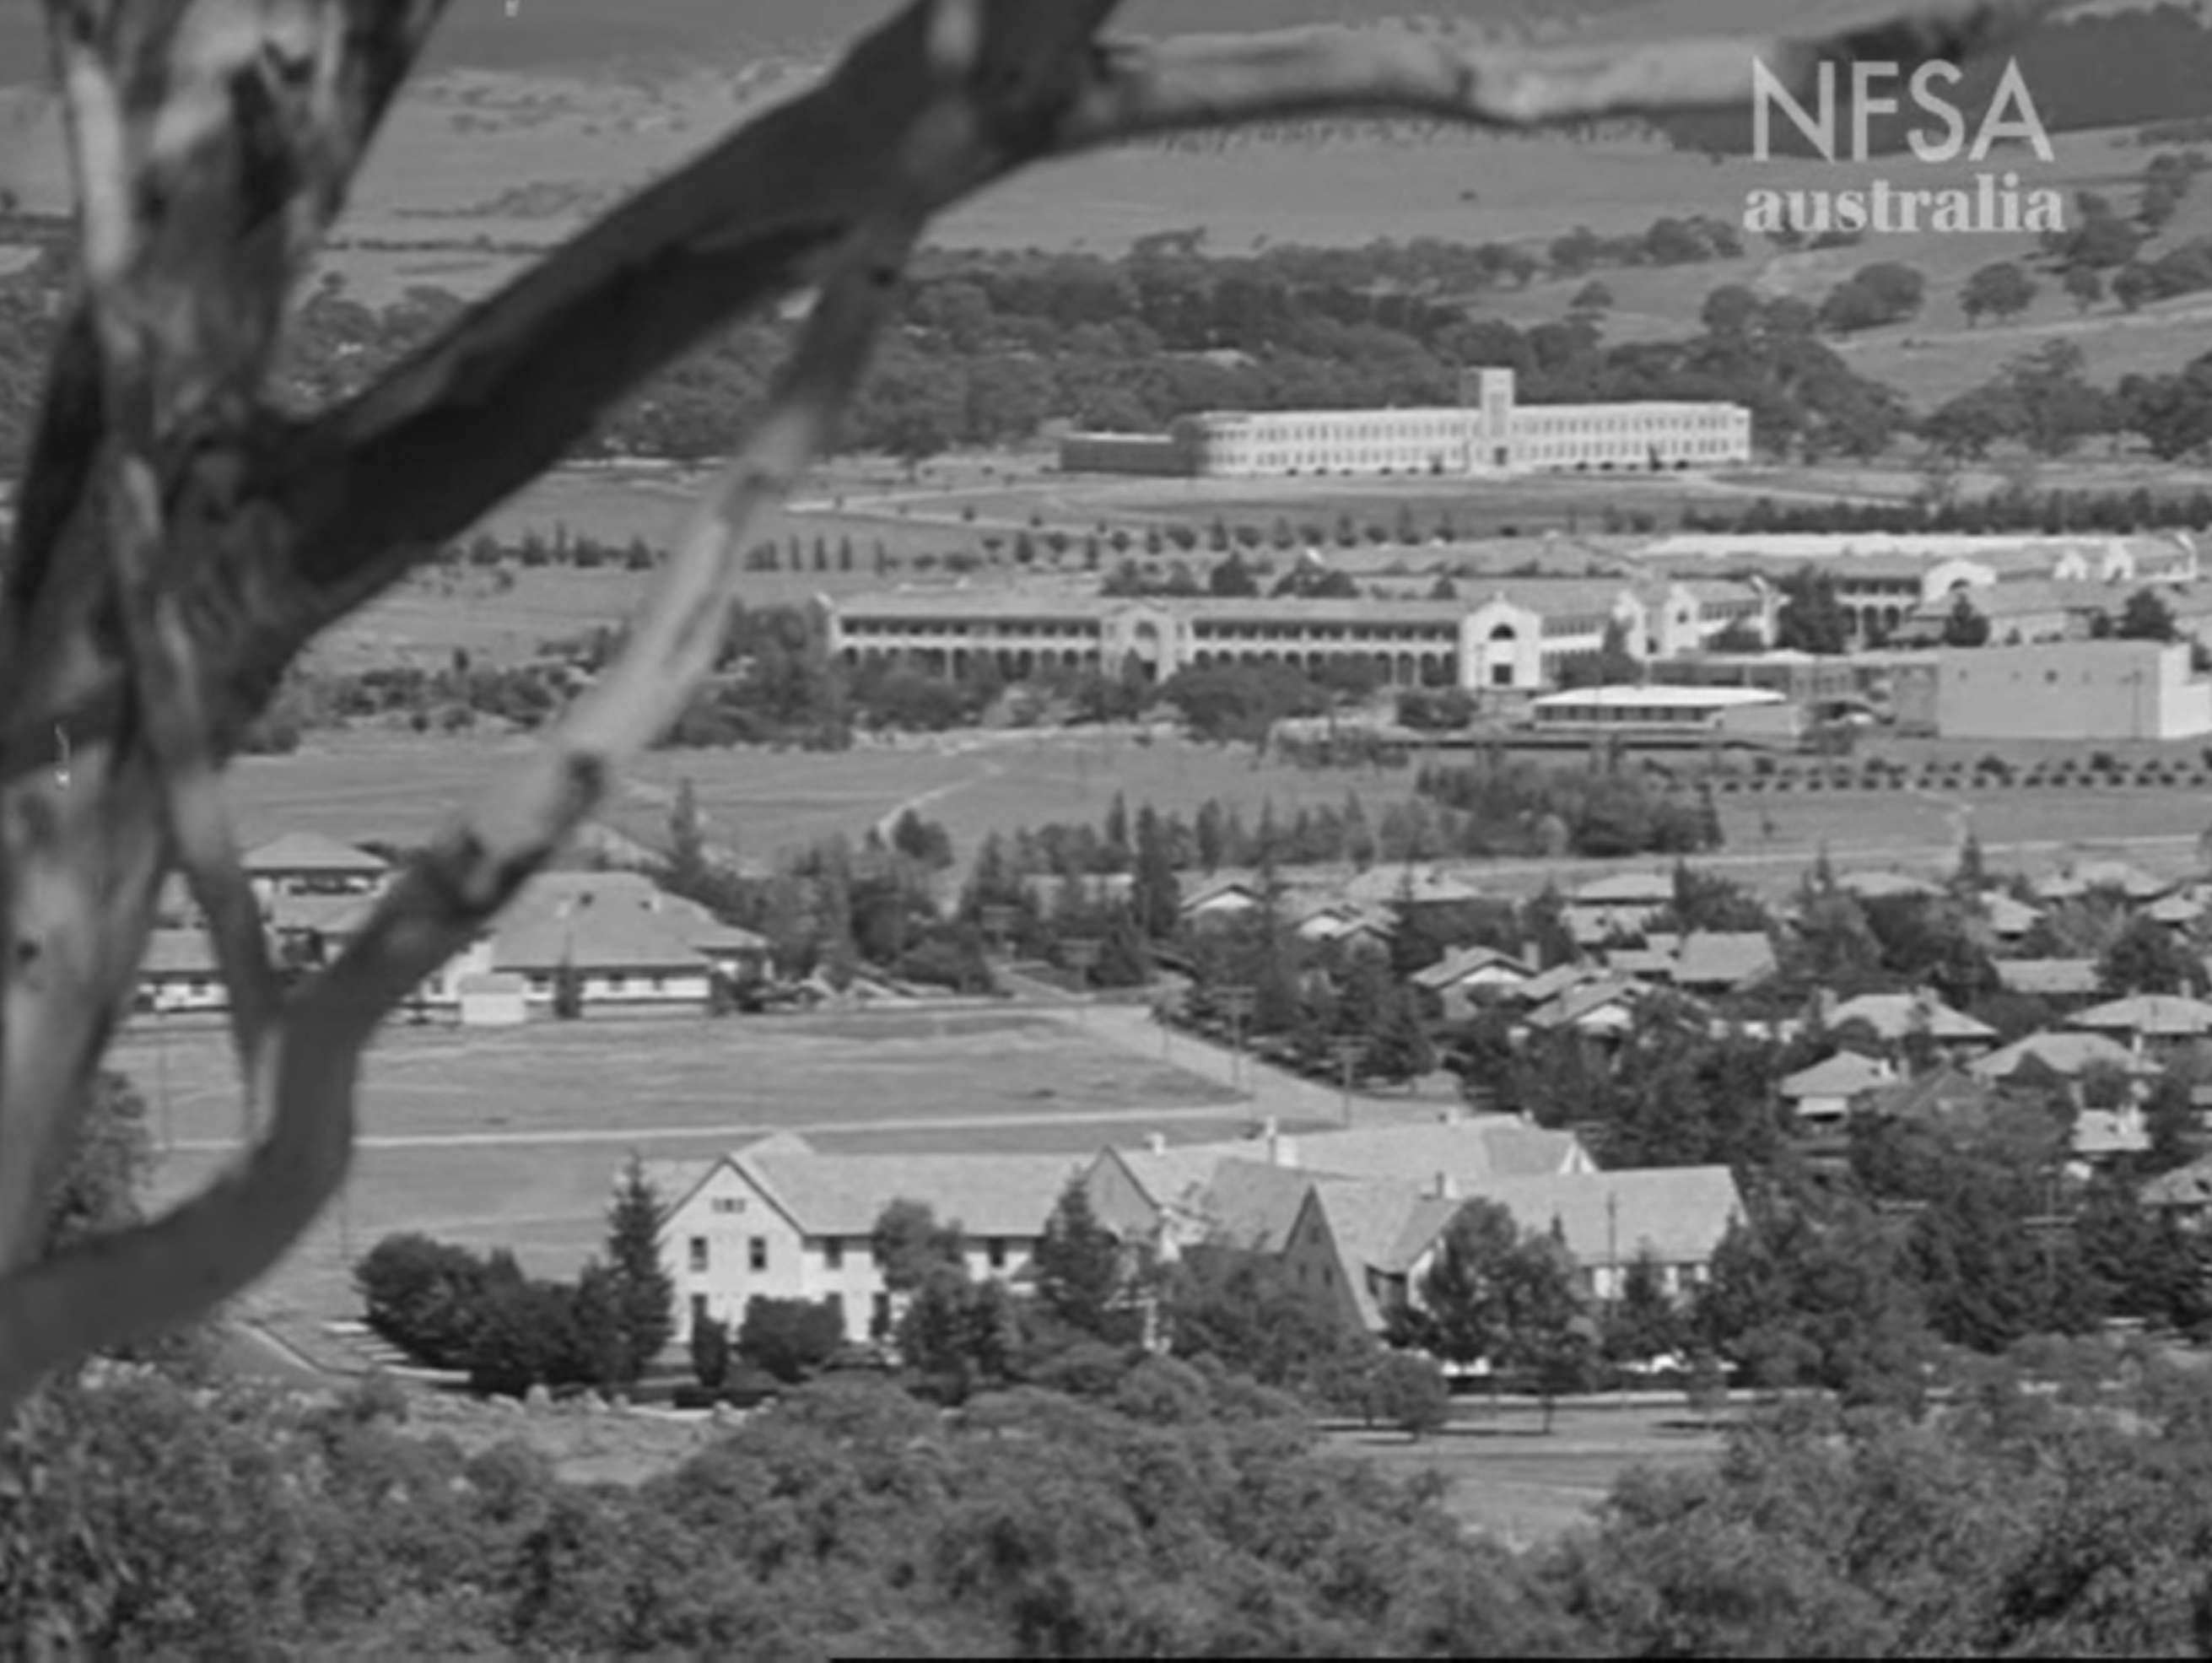 'Canberra is more than a group of government buildings set in a Garden City, it's a community of 12,000 people… Most Canberra people know each other, at least by sight, and share a casual friendliness that is part of the Australian Character.' Still from National Capital c1945. Courtesy National Film and Sound Archive.